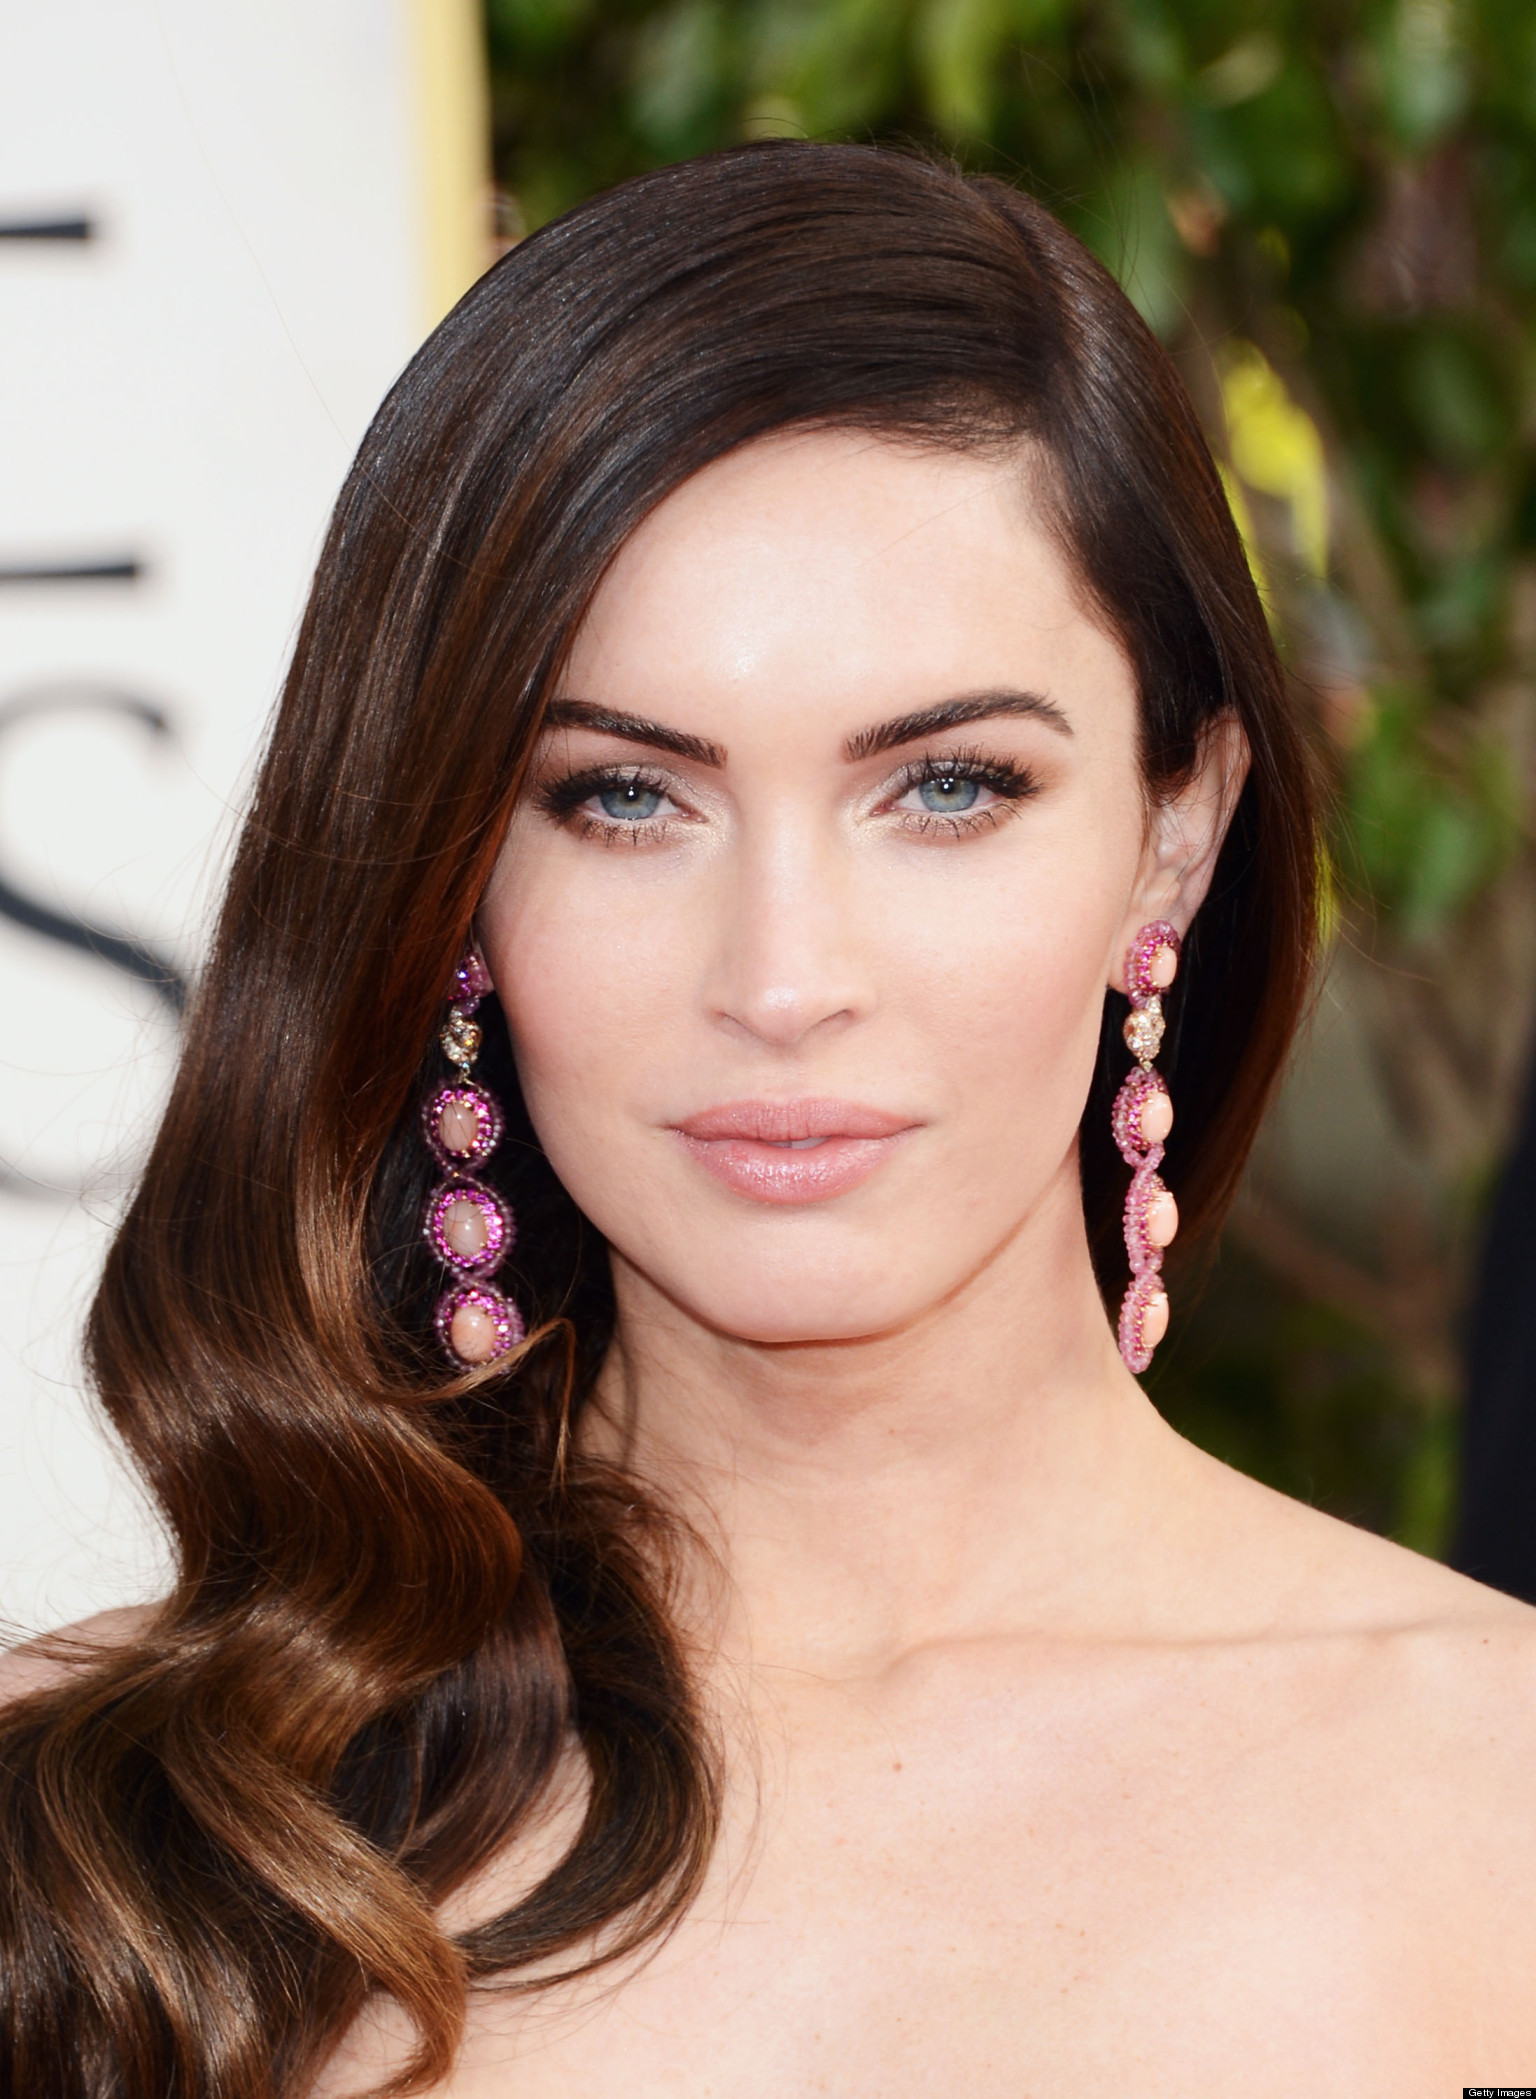 Megan Fox's 'This Is 40' Blooper: Leslie Mann Fondles Actress' Breasts